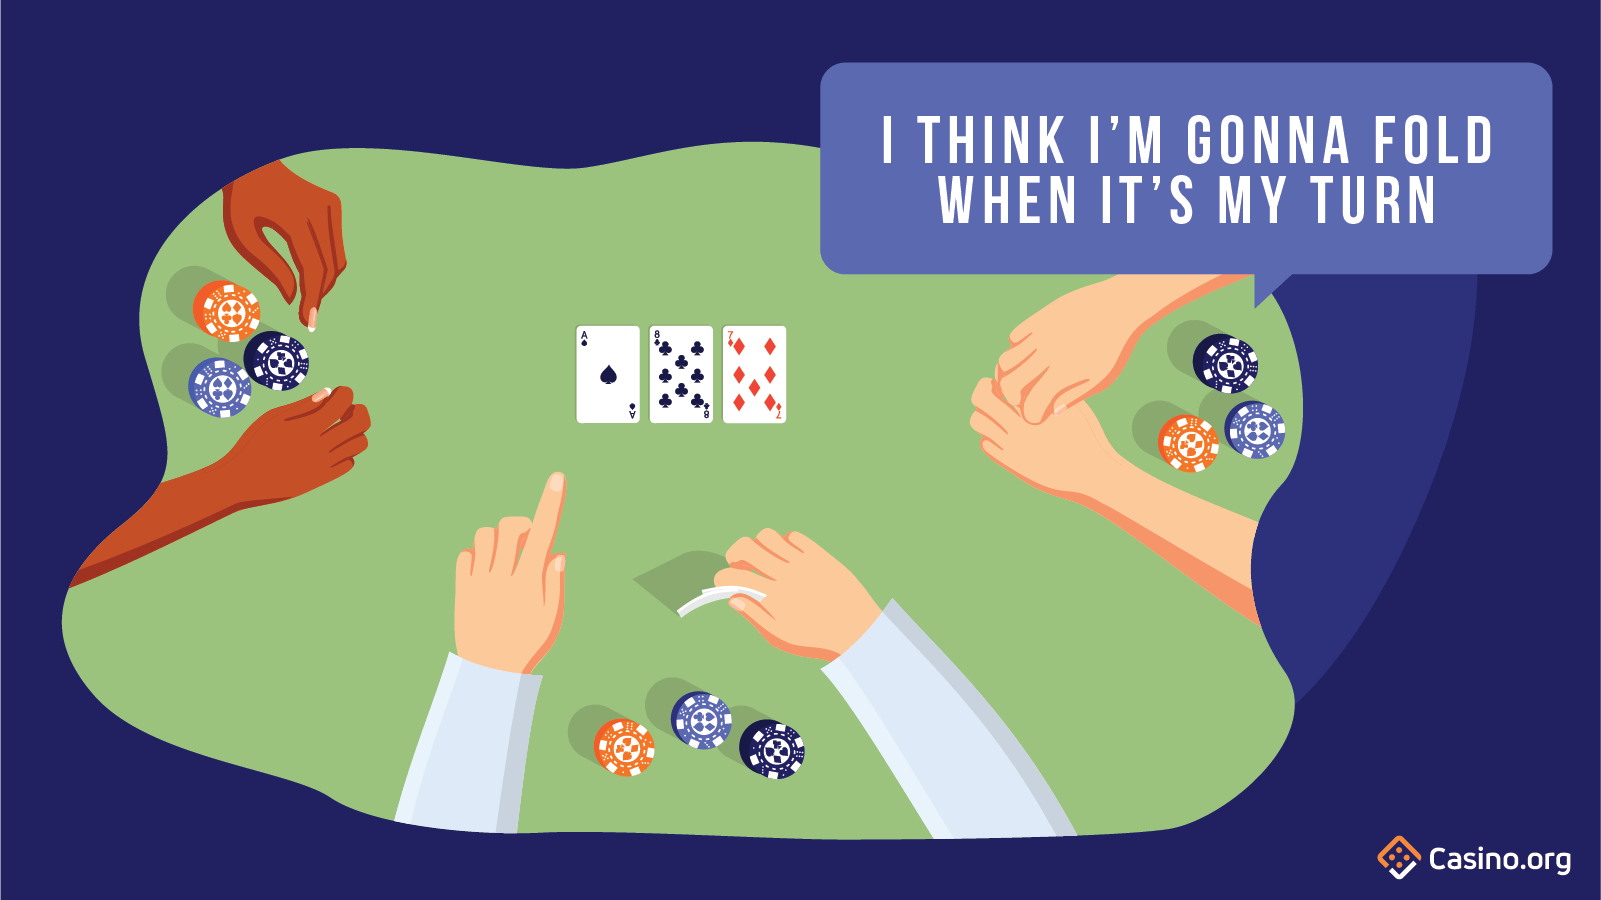 Someone speaking out of turn in poker.